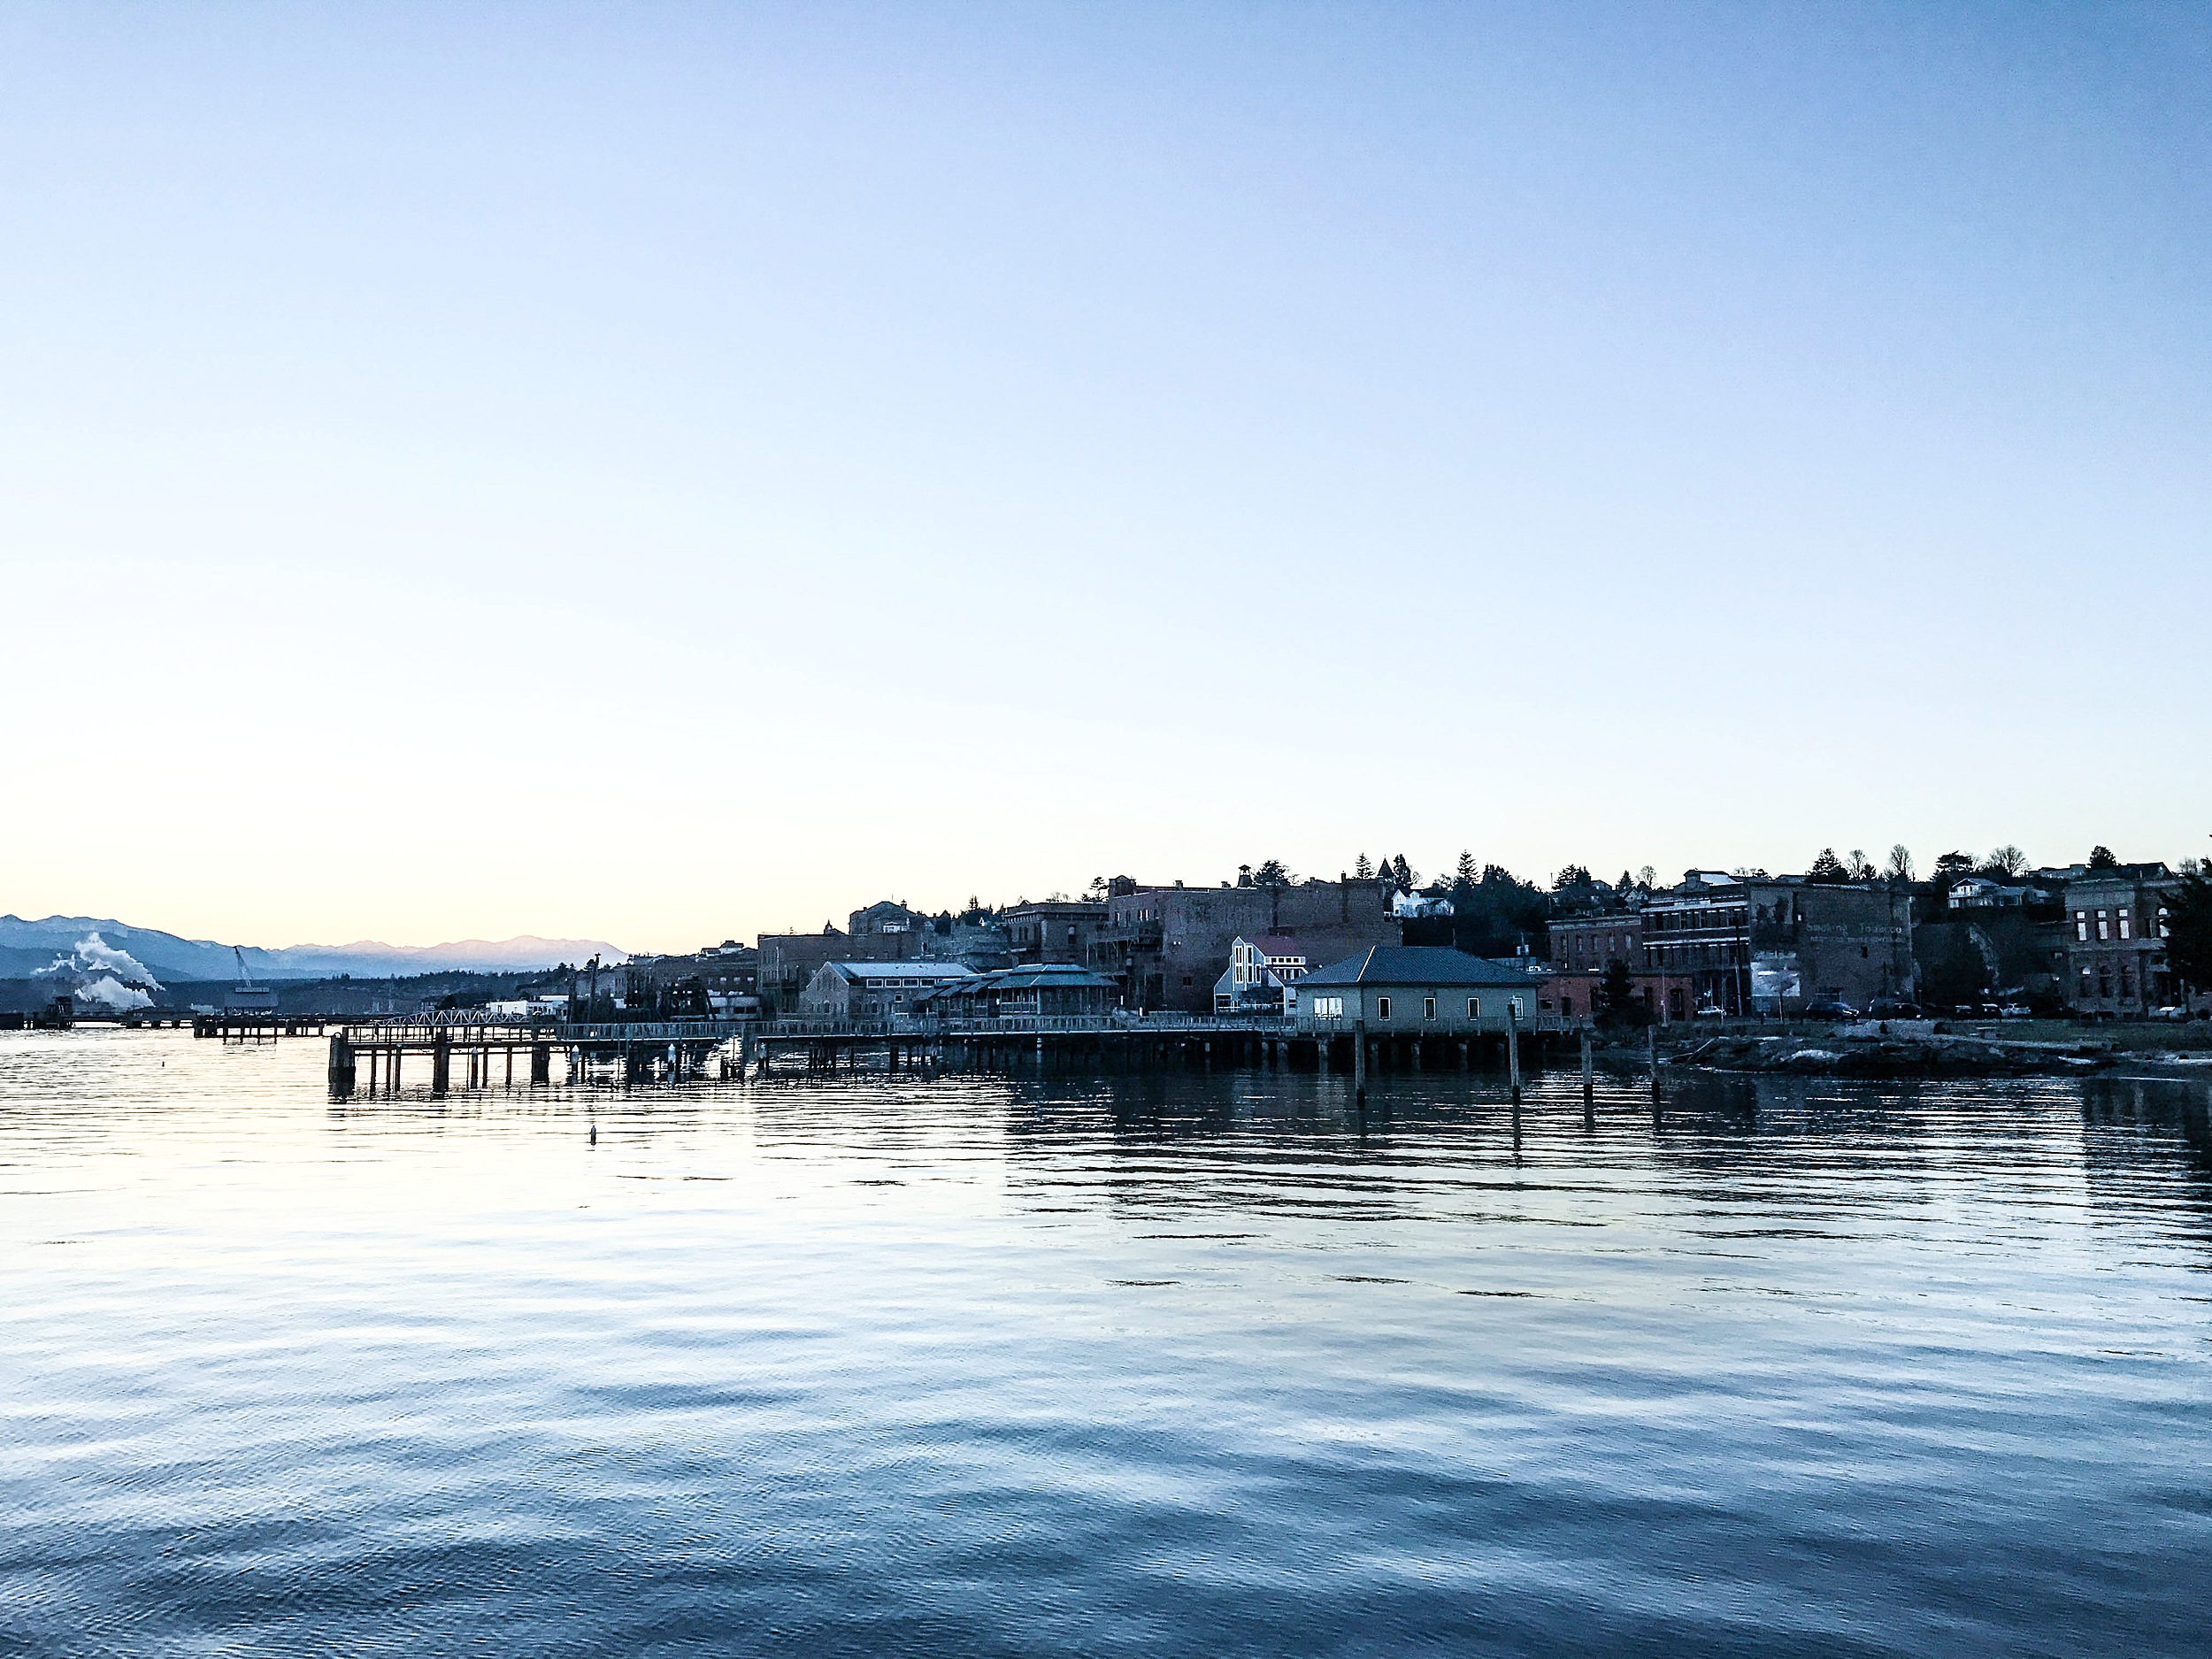 """Port Townsend, established in 1851, is called the """"City of Dreams"""" because it was once slated to be the largest city on the West CoAst."""